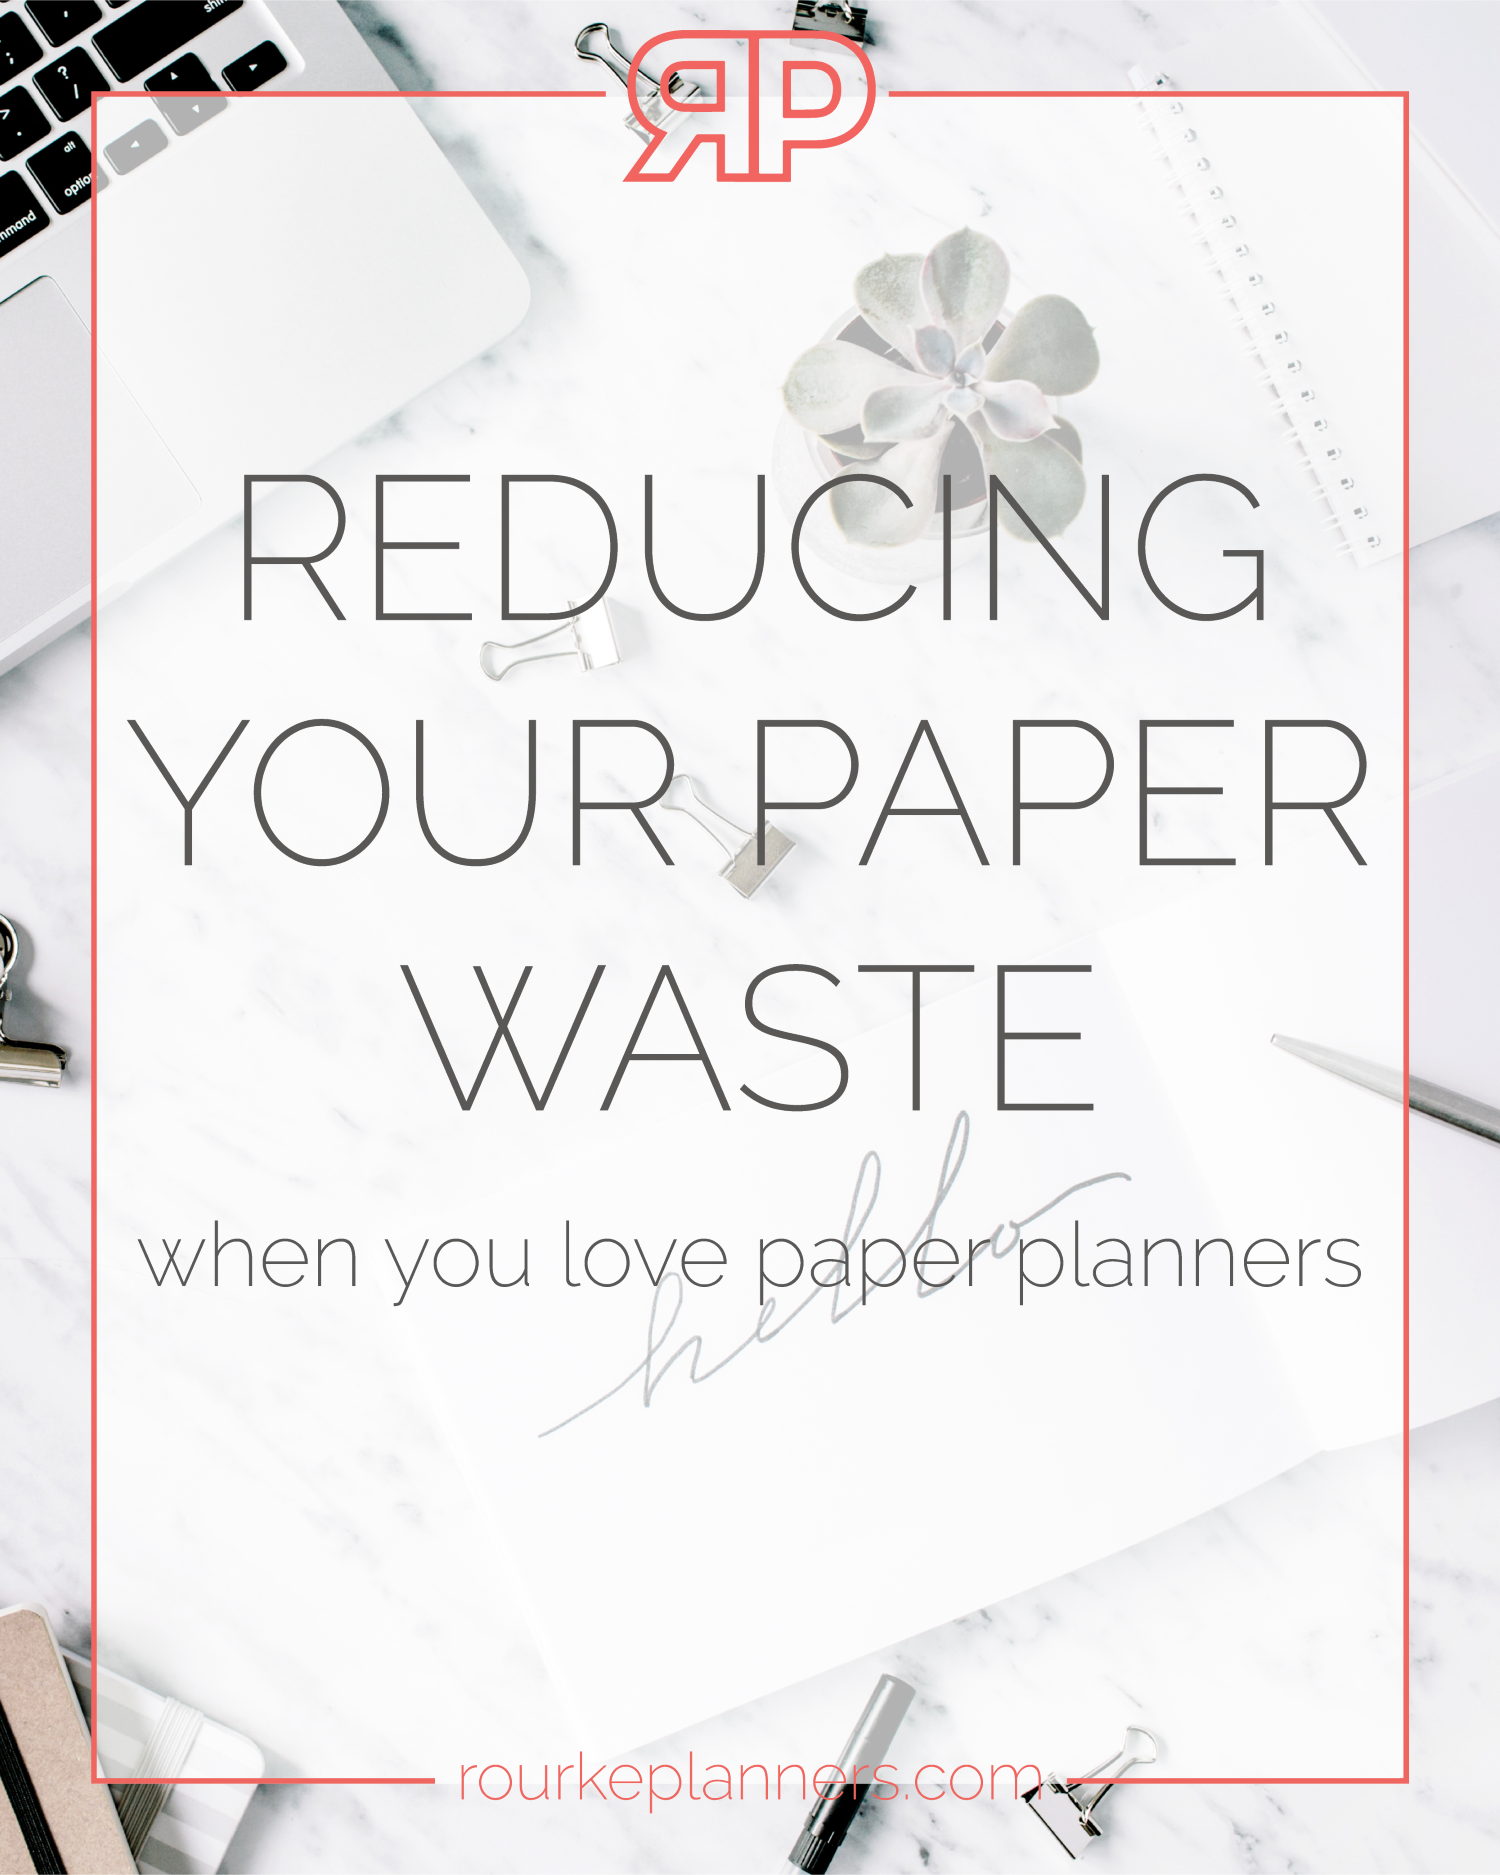 How to Reduce Your Paper Waste | Rourke Planners